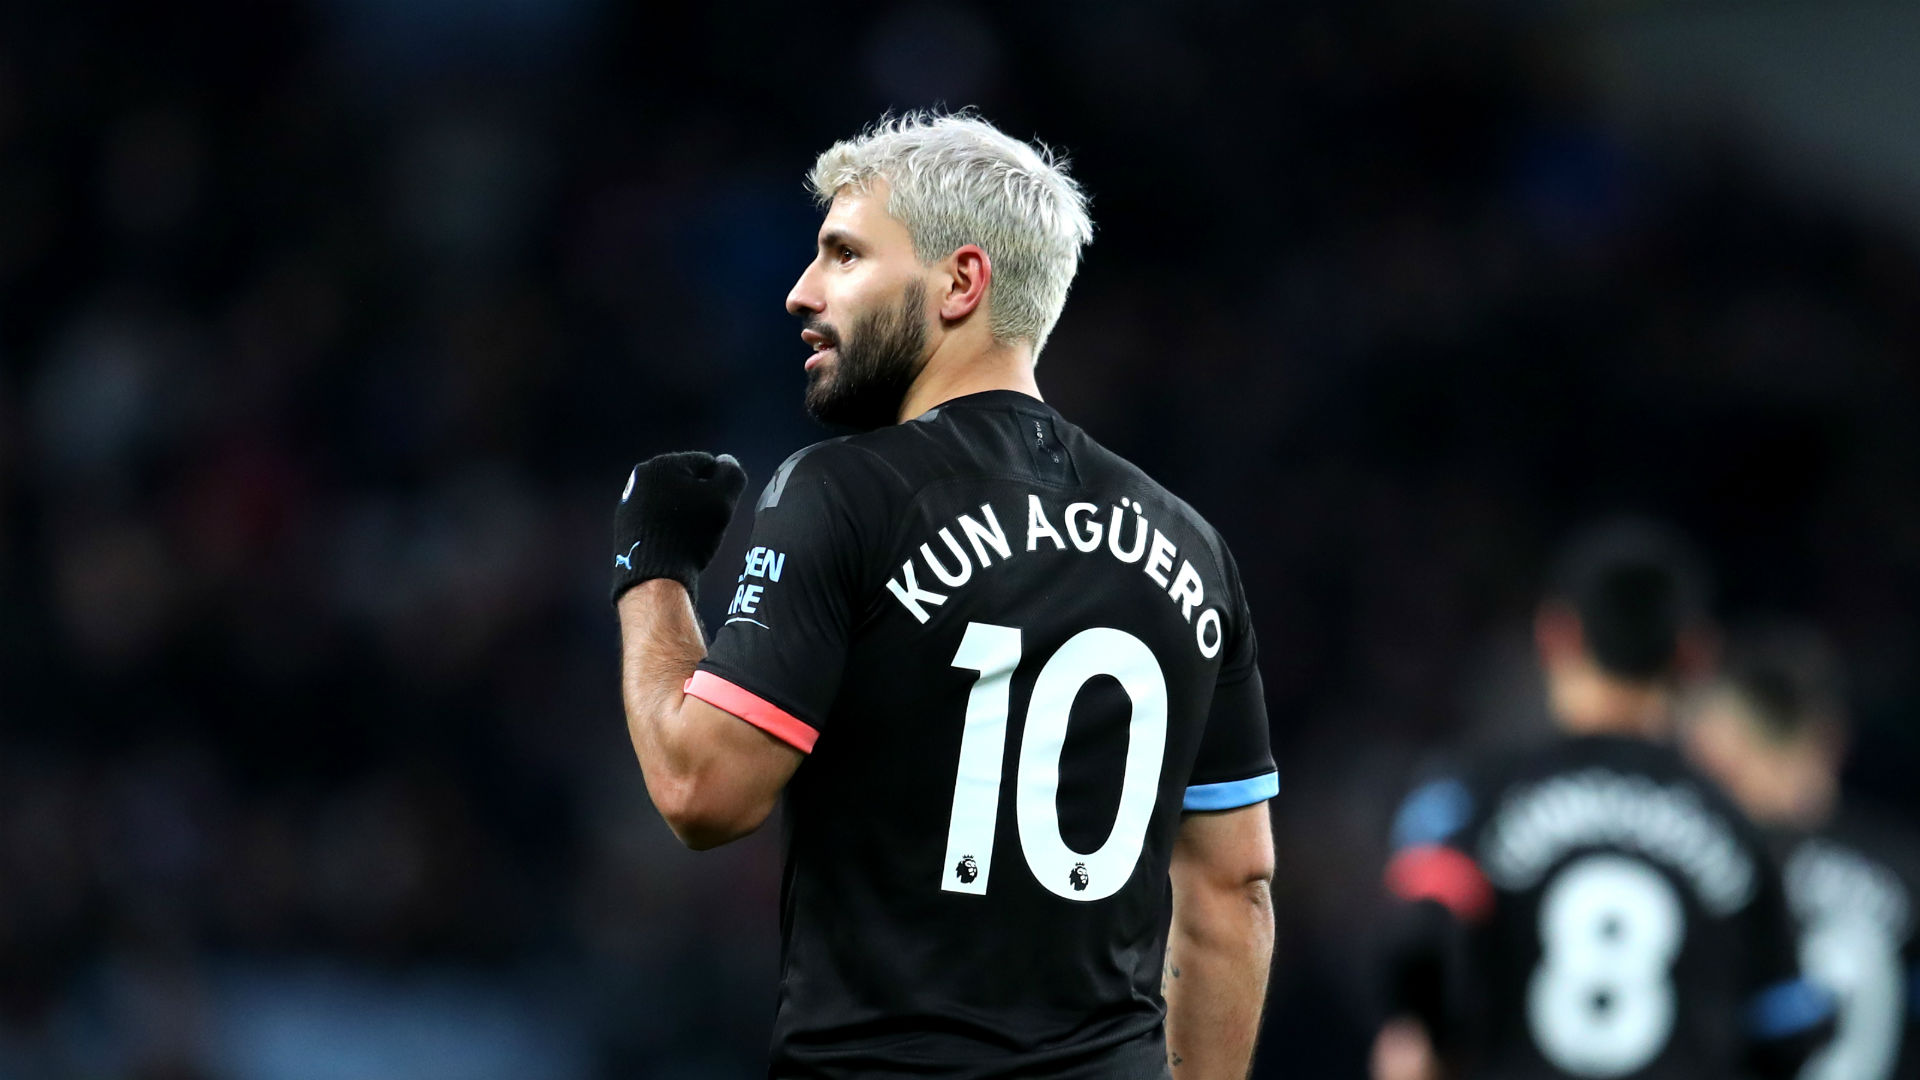 Aguero hat-trick record: Manchester City star's 12 Premier League trebles